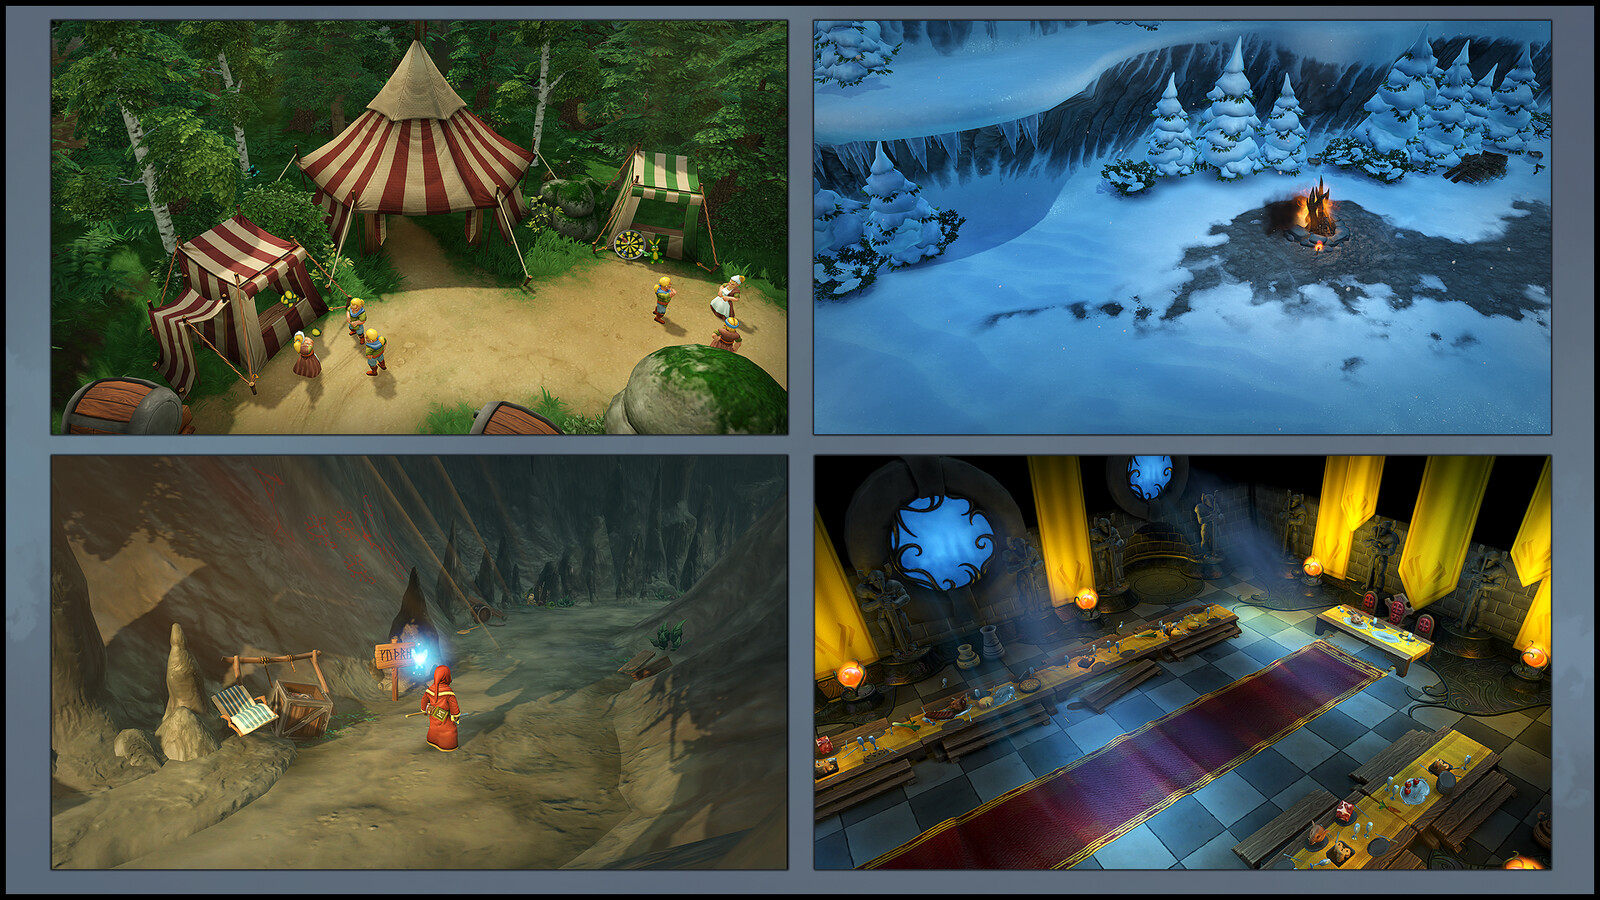 Magicka 2 has a lot of different locations and moods. Here is a sample from the game to give a feel of the finished product.